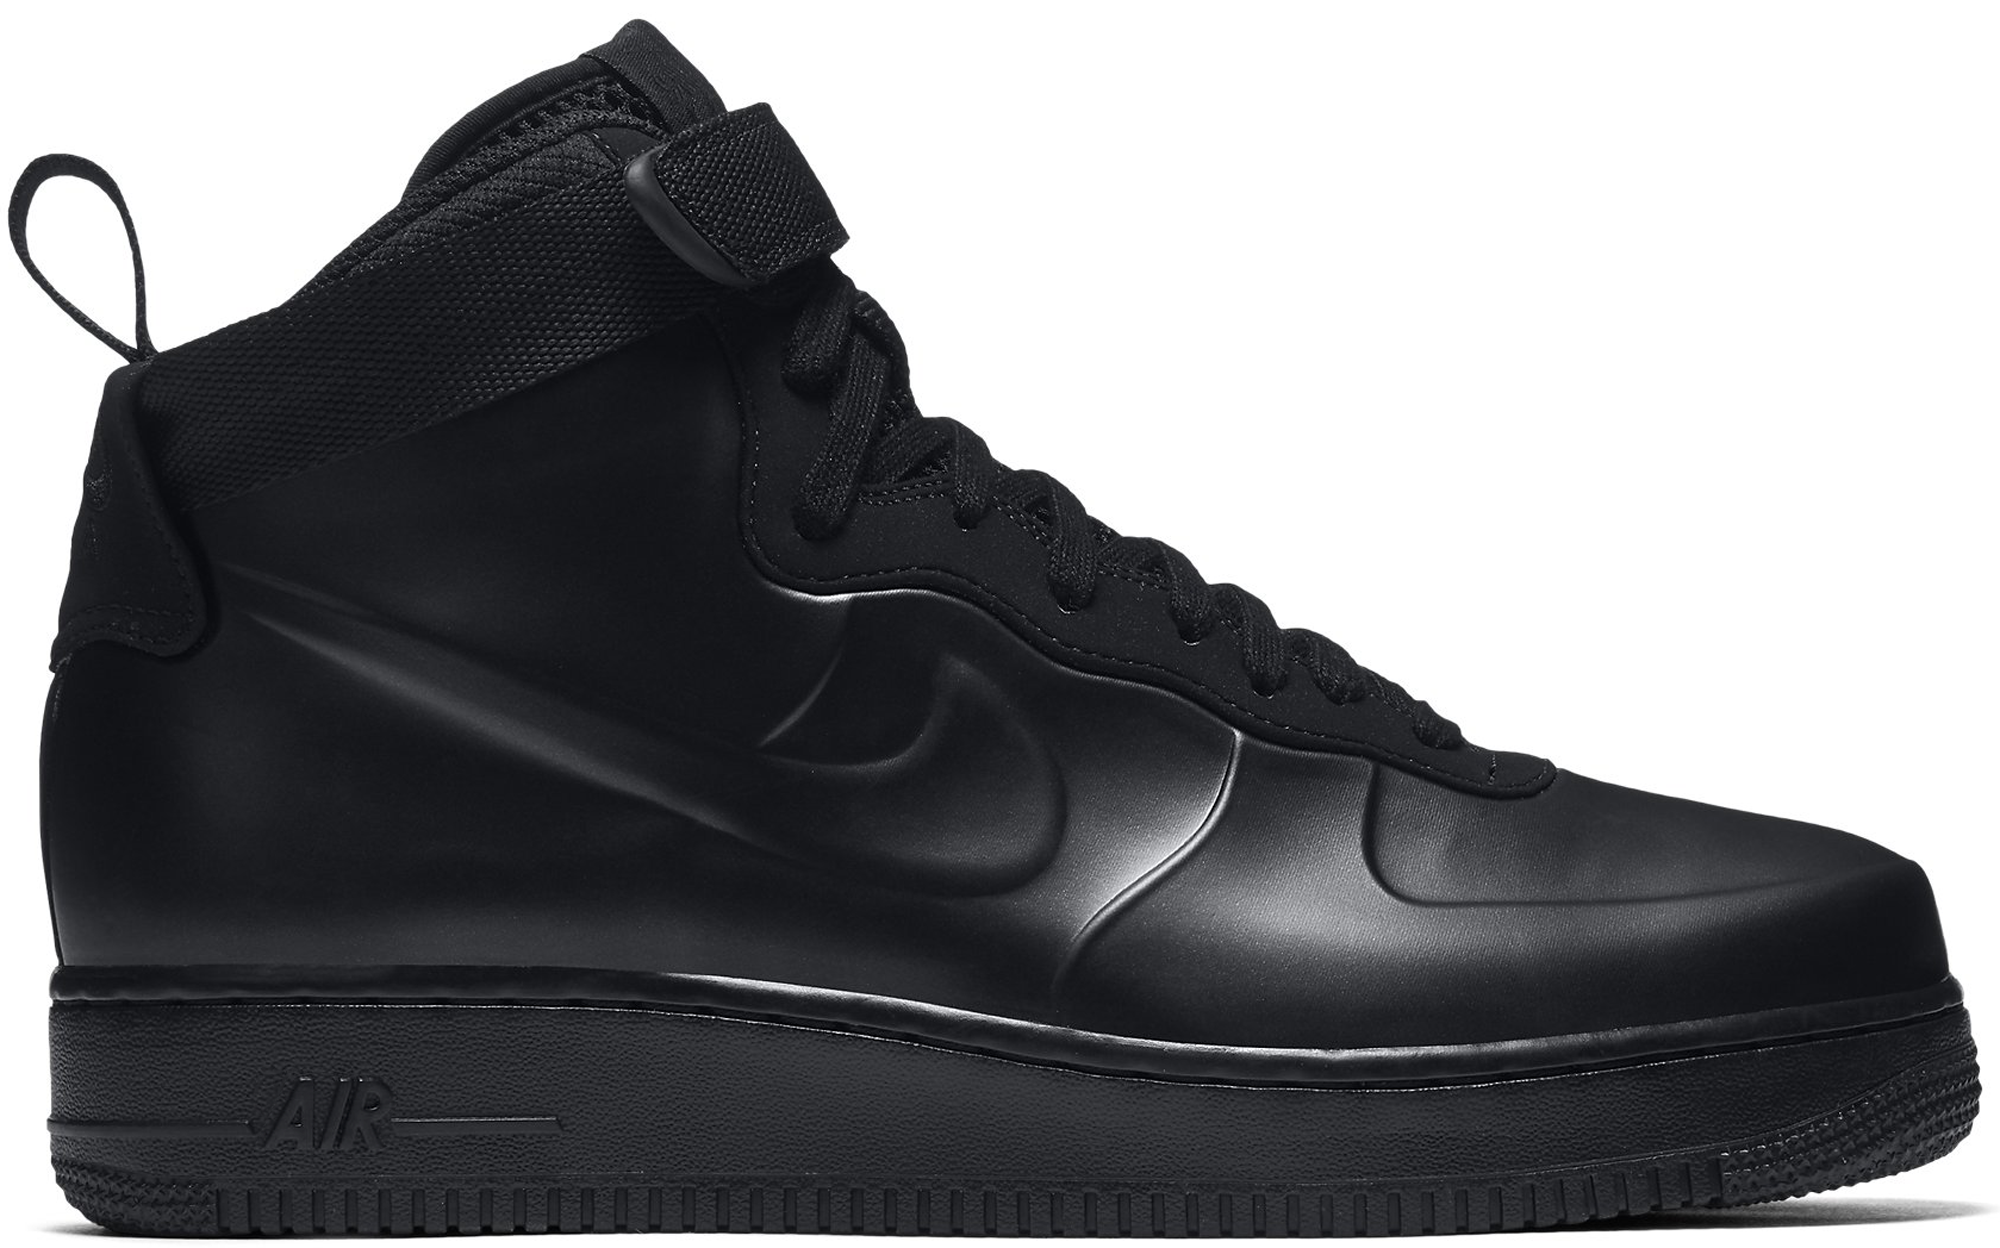 the nike air force 1 foamposite cupertino